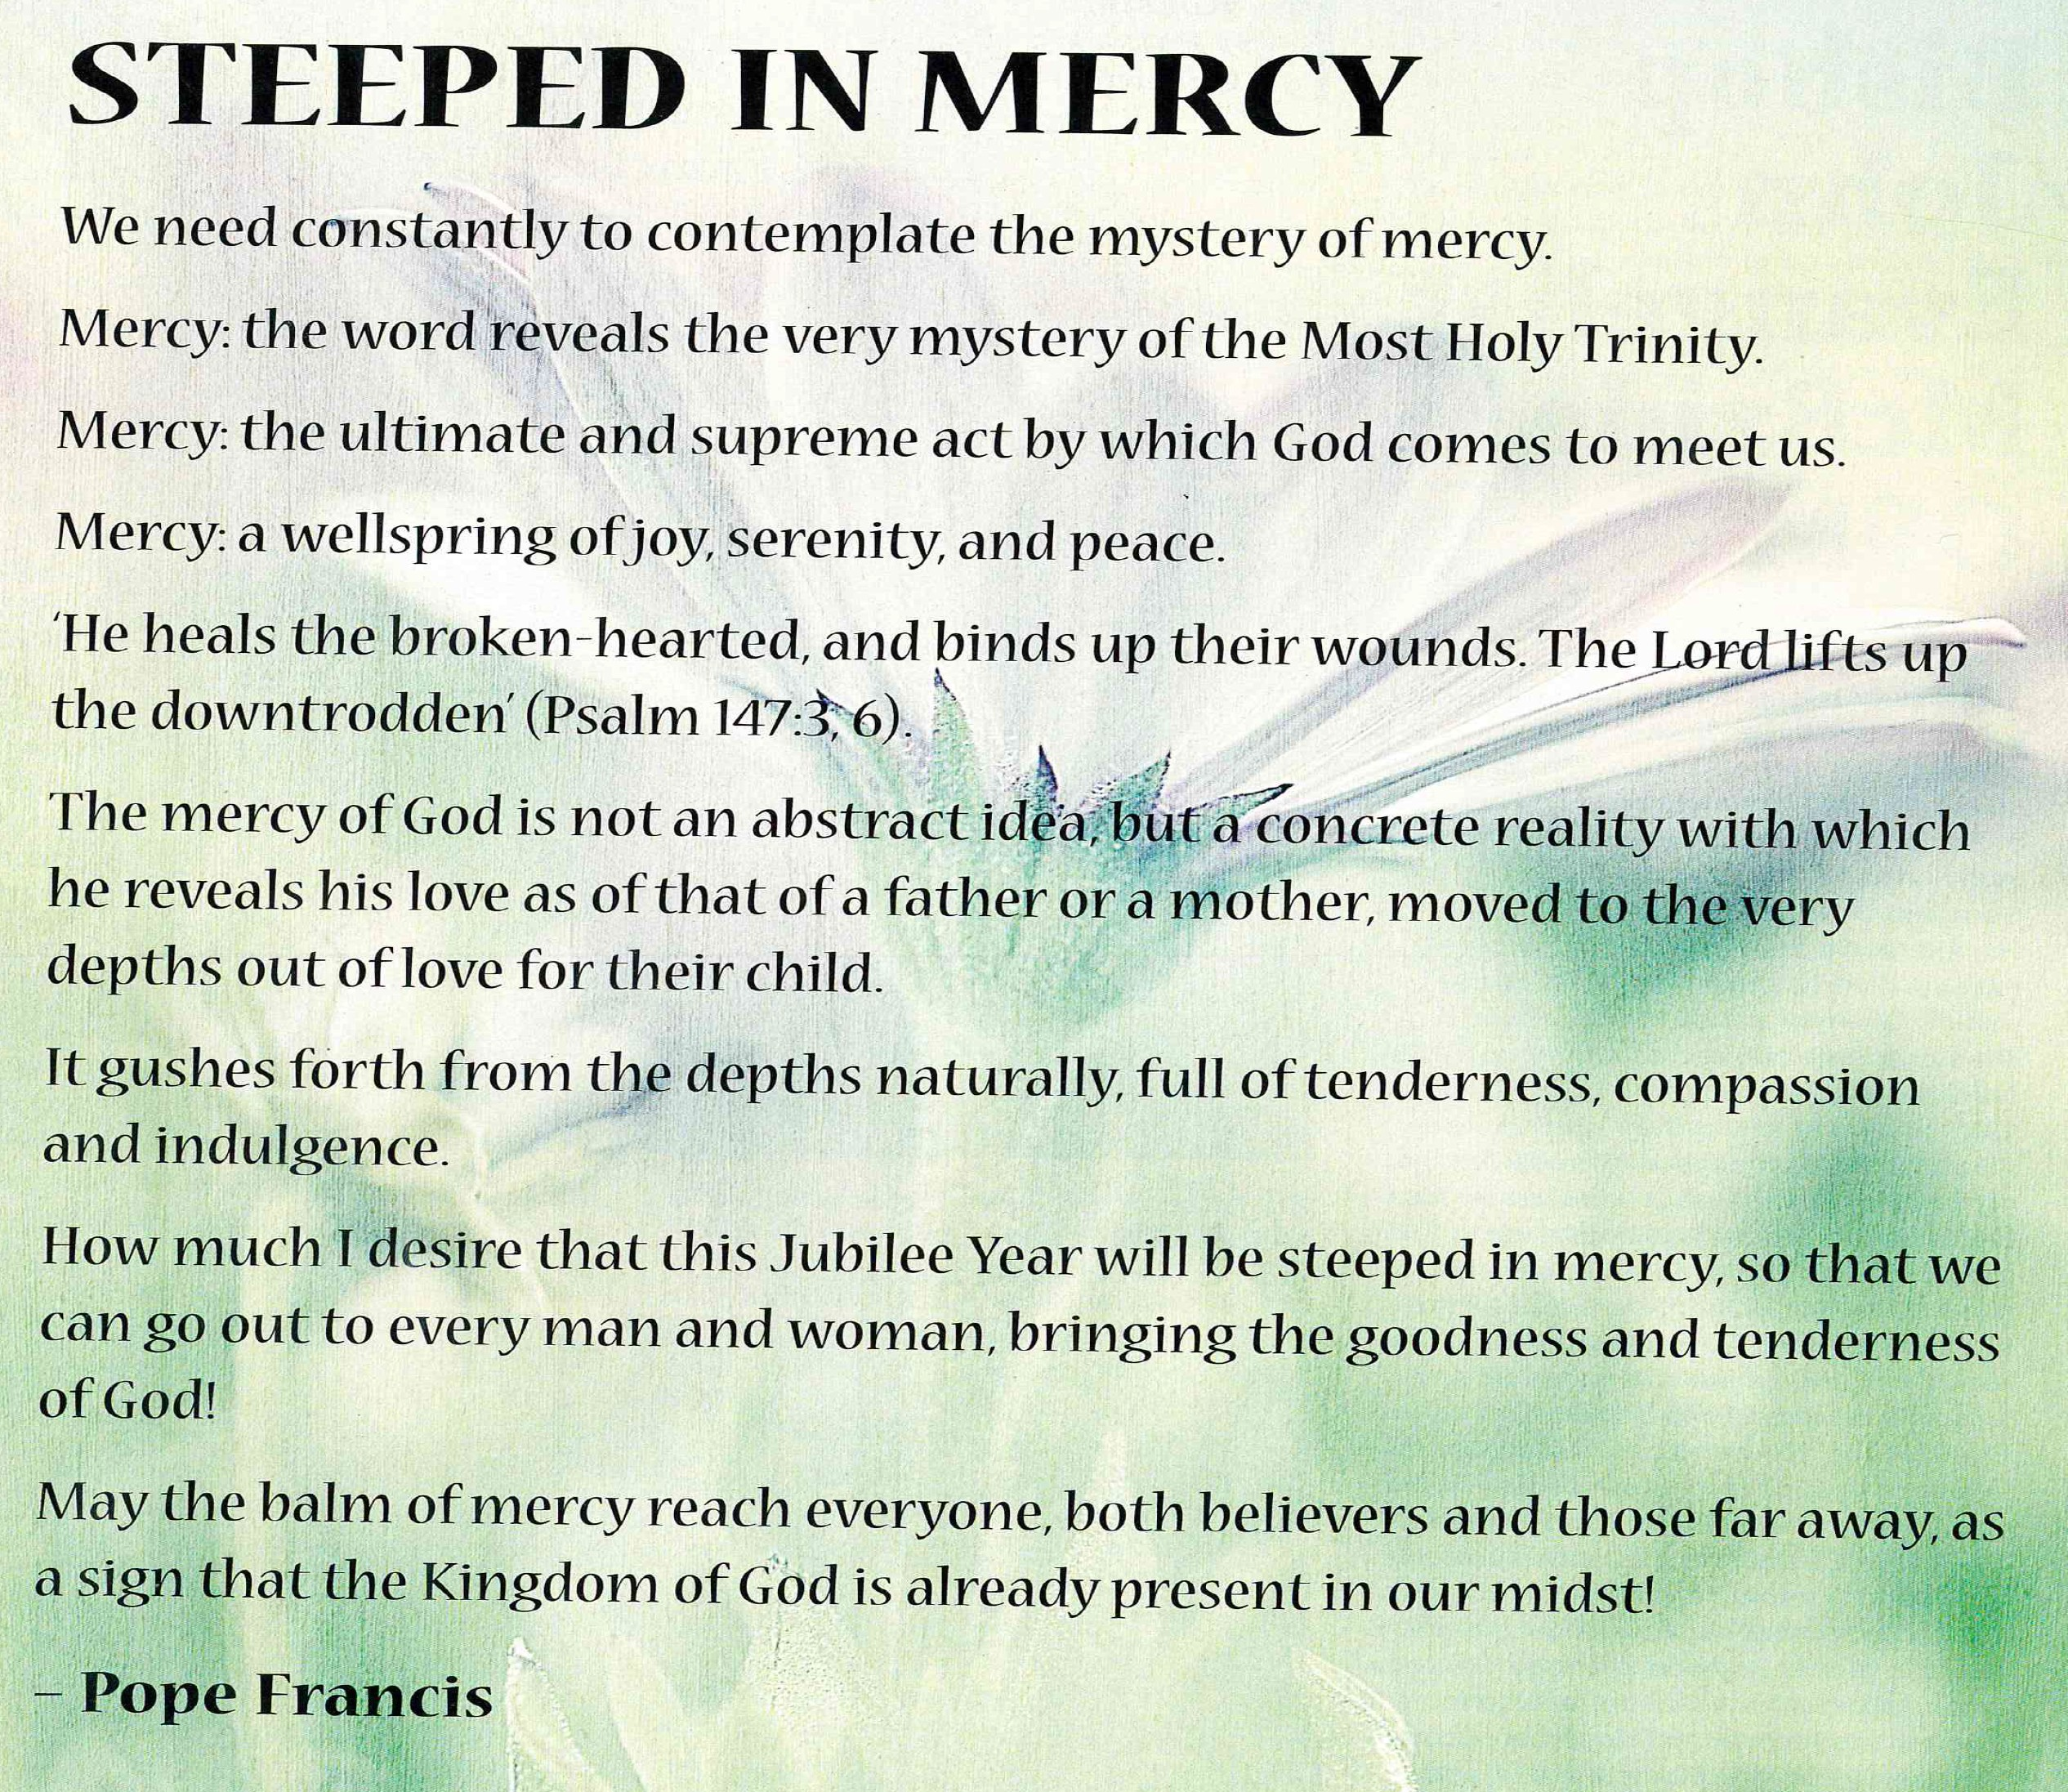 Steeped in Mercy